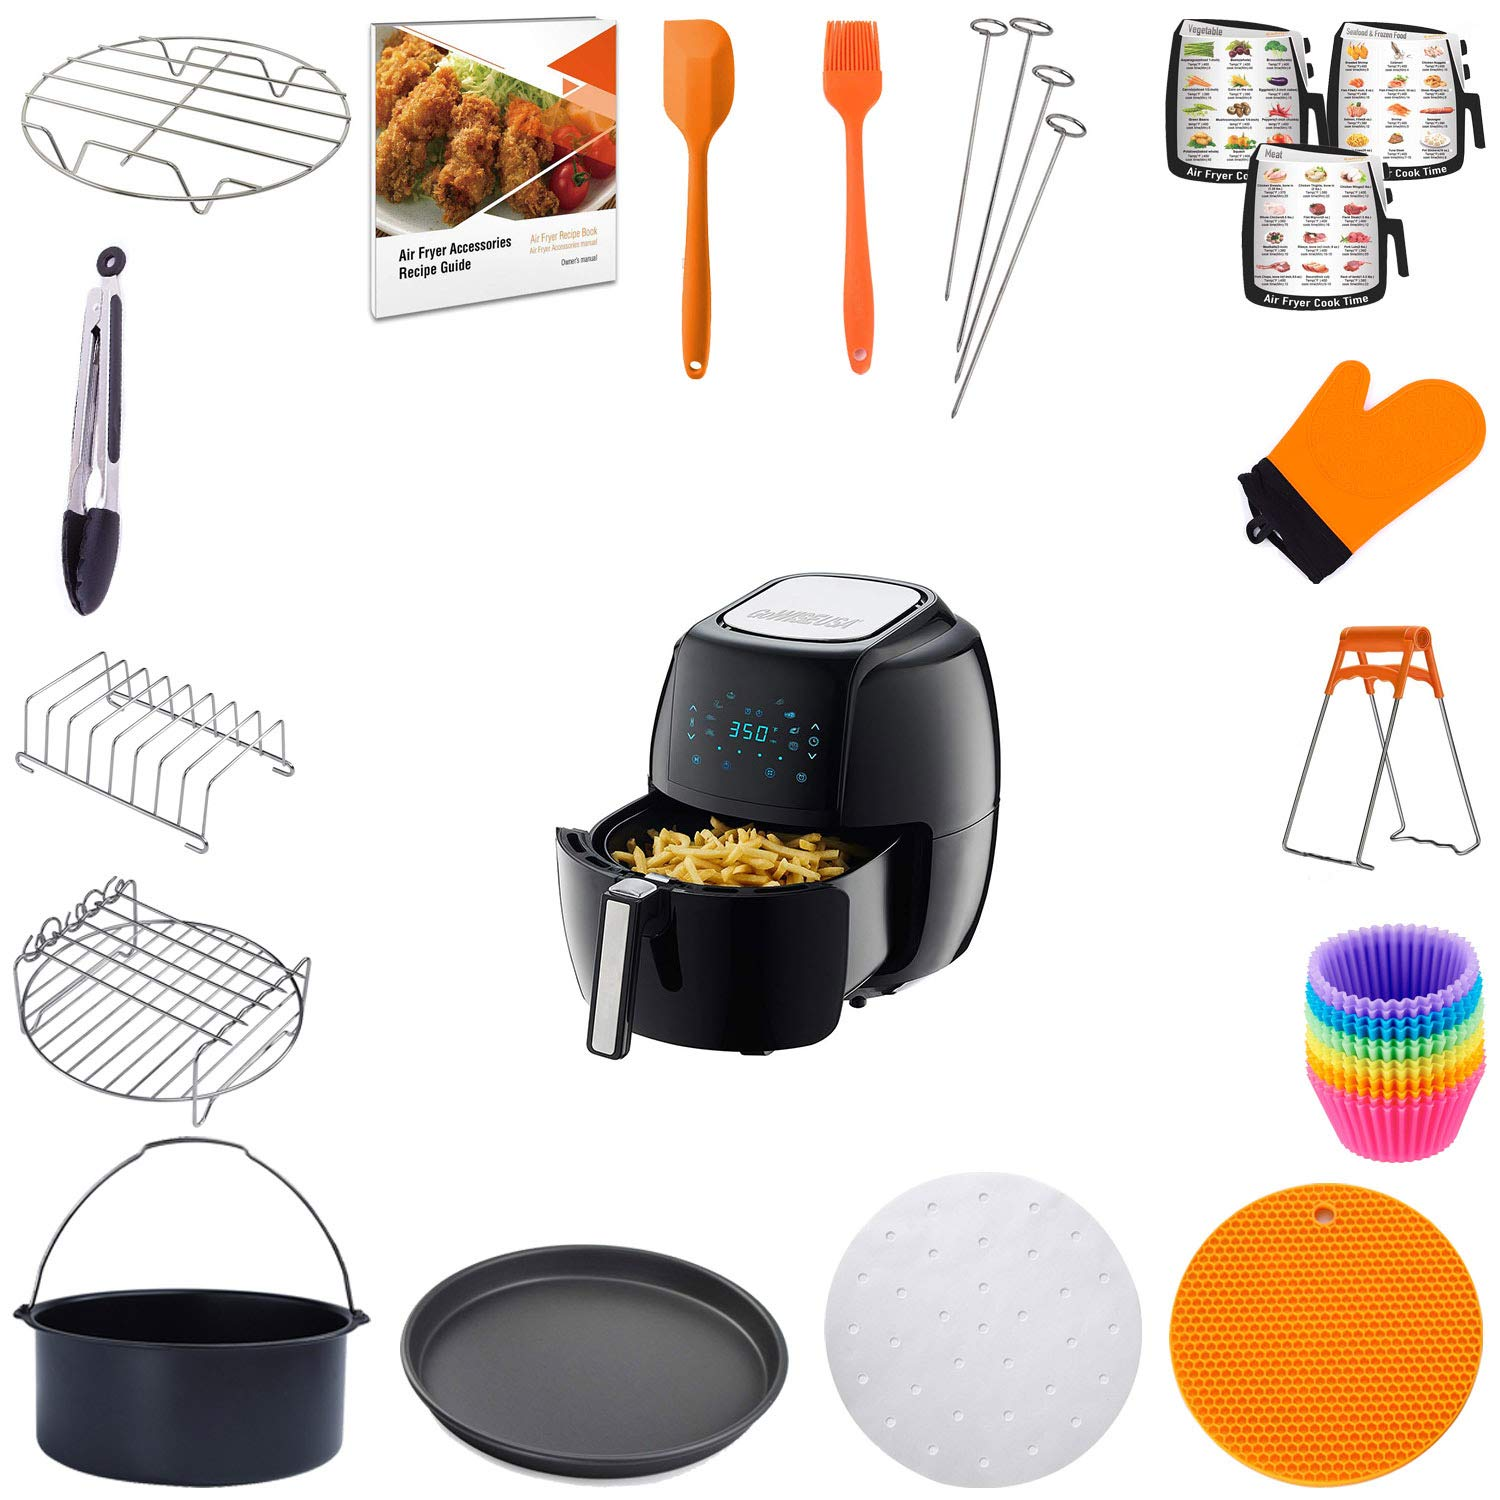 BPA Free Compatible for Philips Gowise Ninja Cozyna Cosori and Power AirFryer Jrickss Air Fryer Accessories 8 Inch 15 PCS FIT for 3.7//4.2//5.3//5.5//5.8 QT FDA Approved Recipe Book| Dishwasher Safe